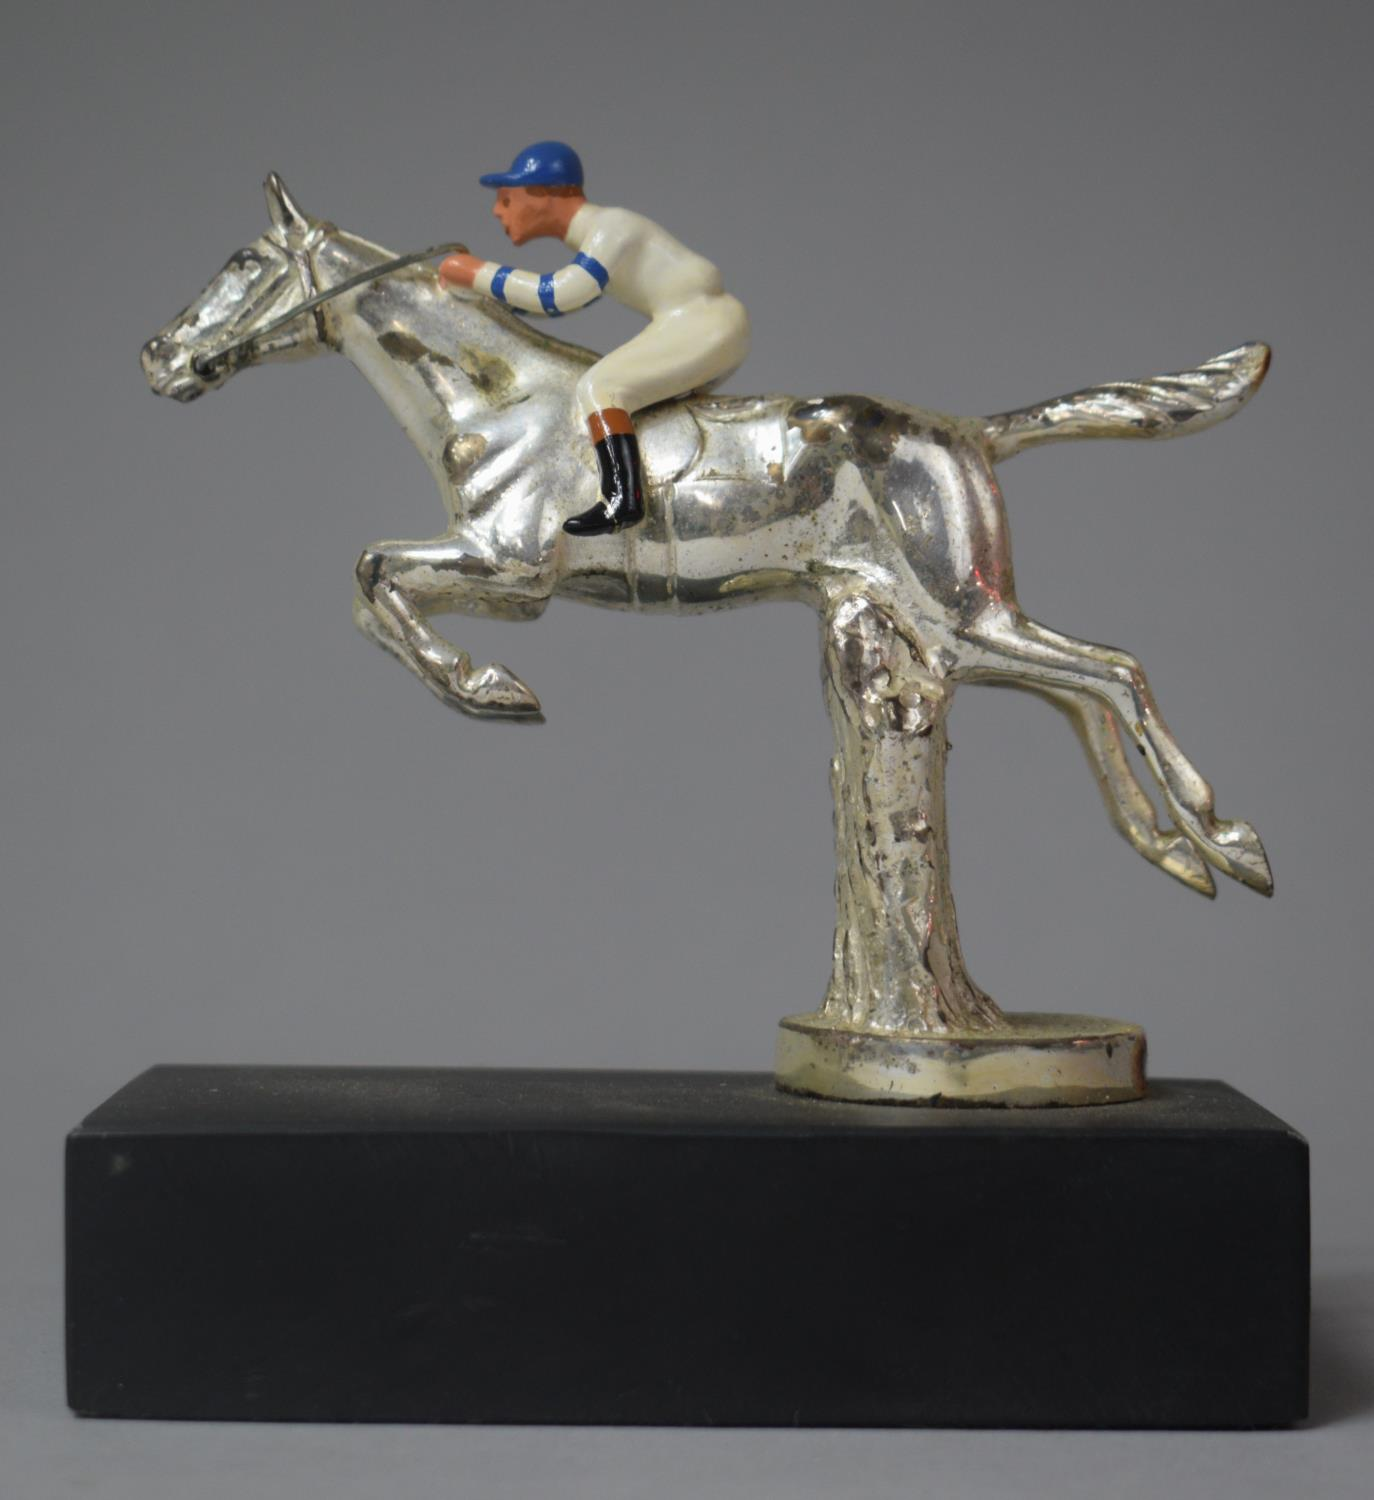 A Chromed Car Mascot in the Form of Racehorse and Jockey Taking Fence, 12.5cm high - Image 4 of 4